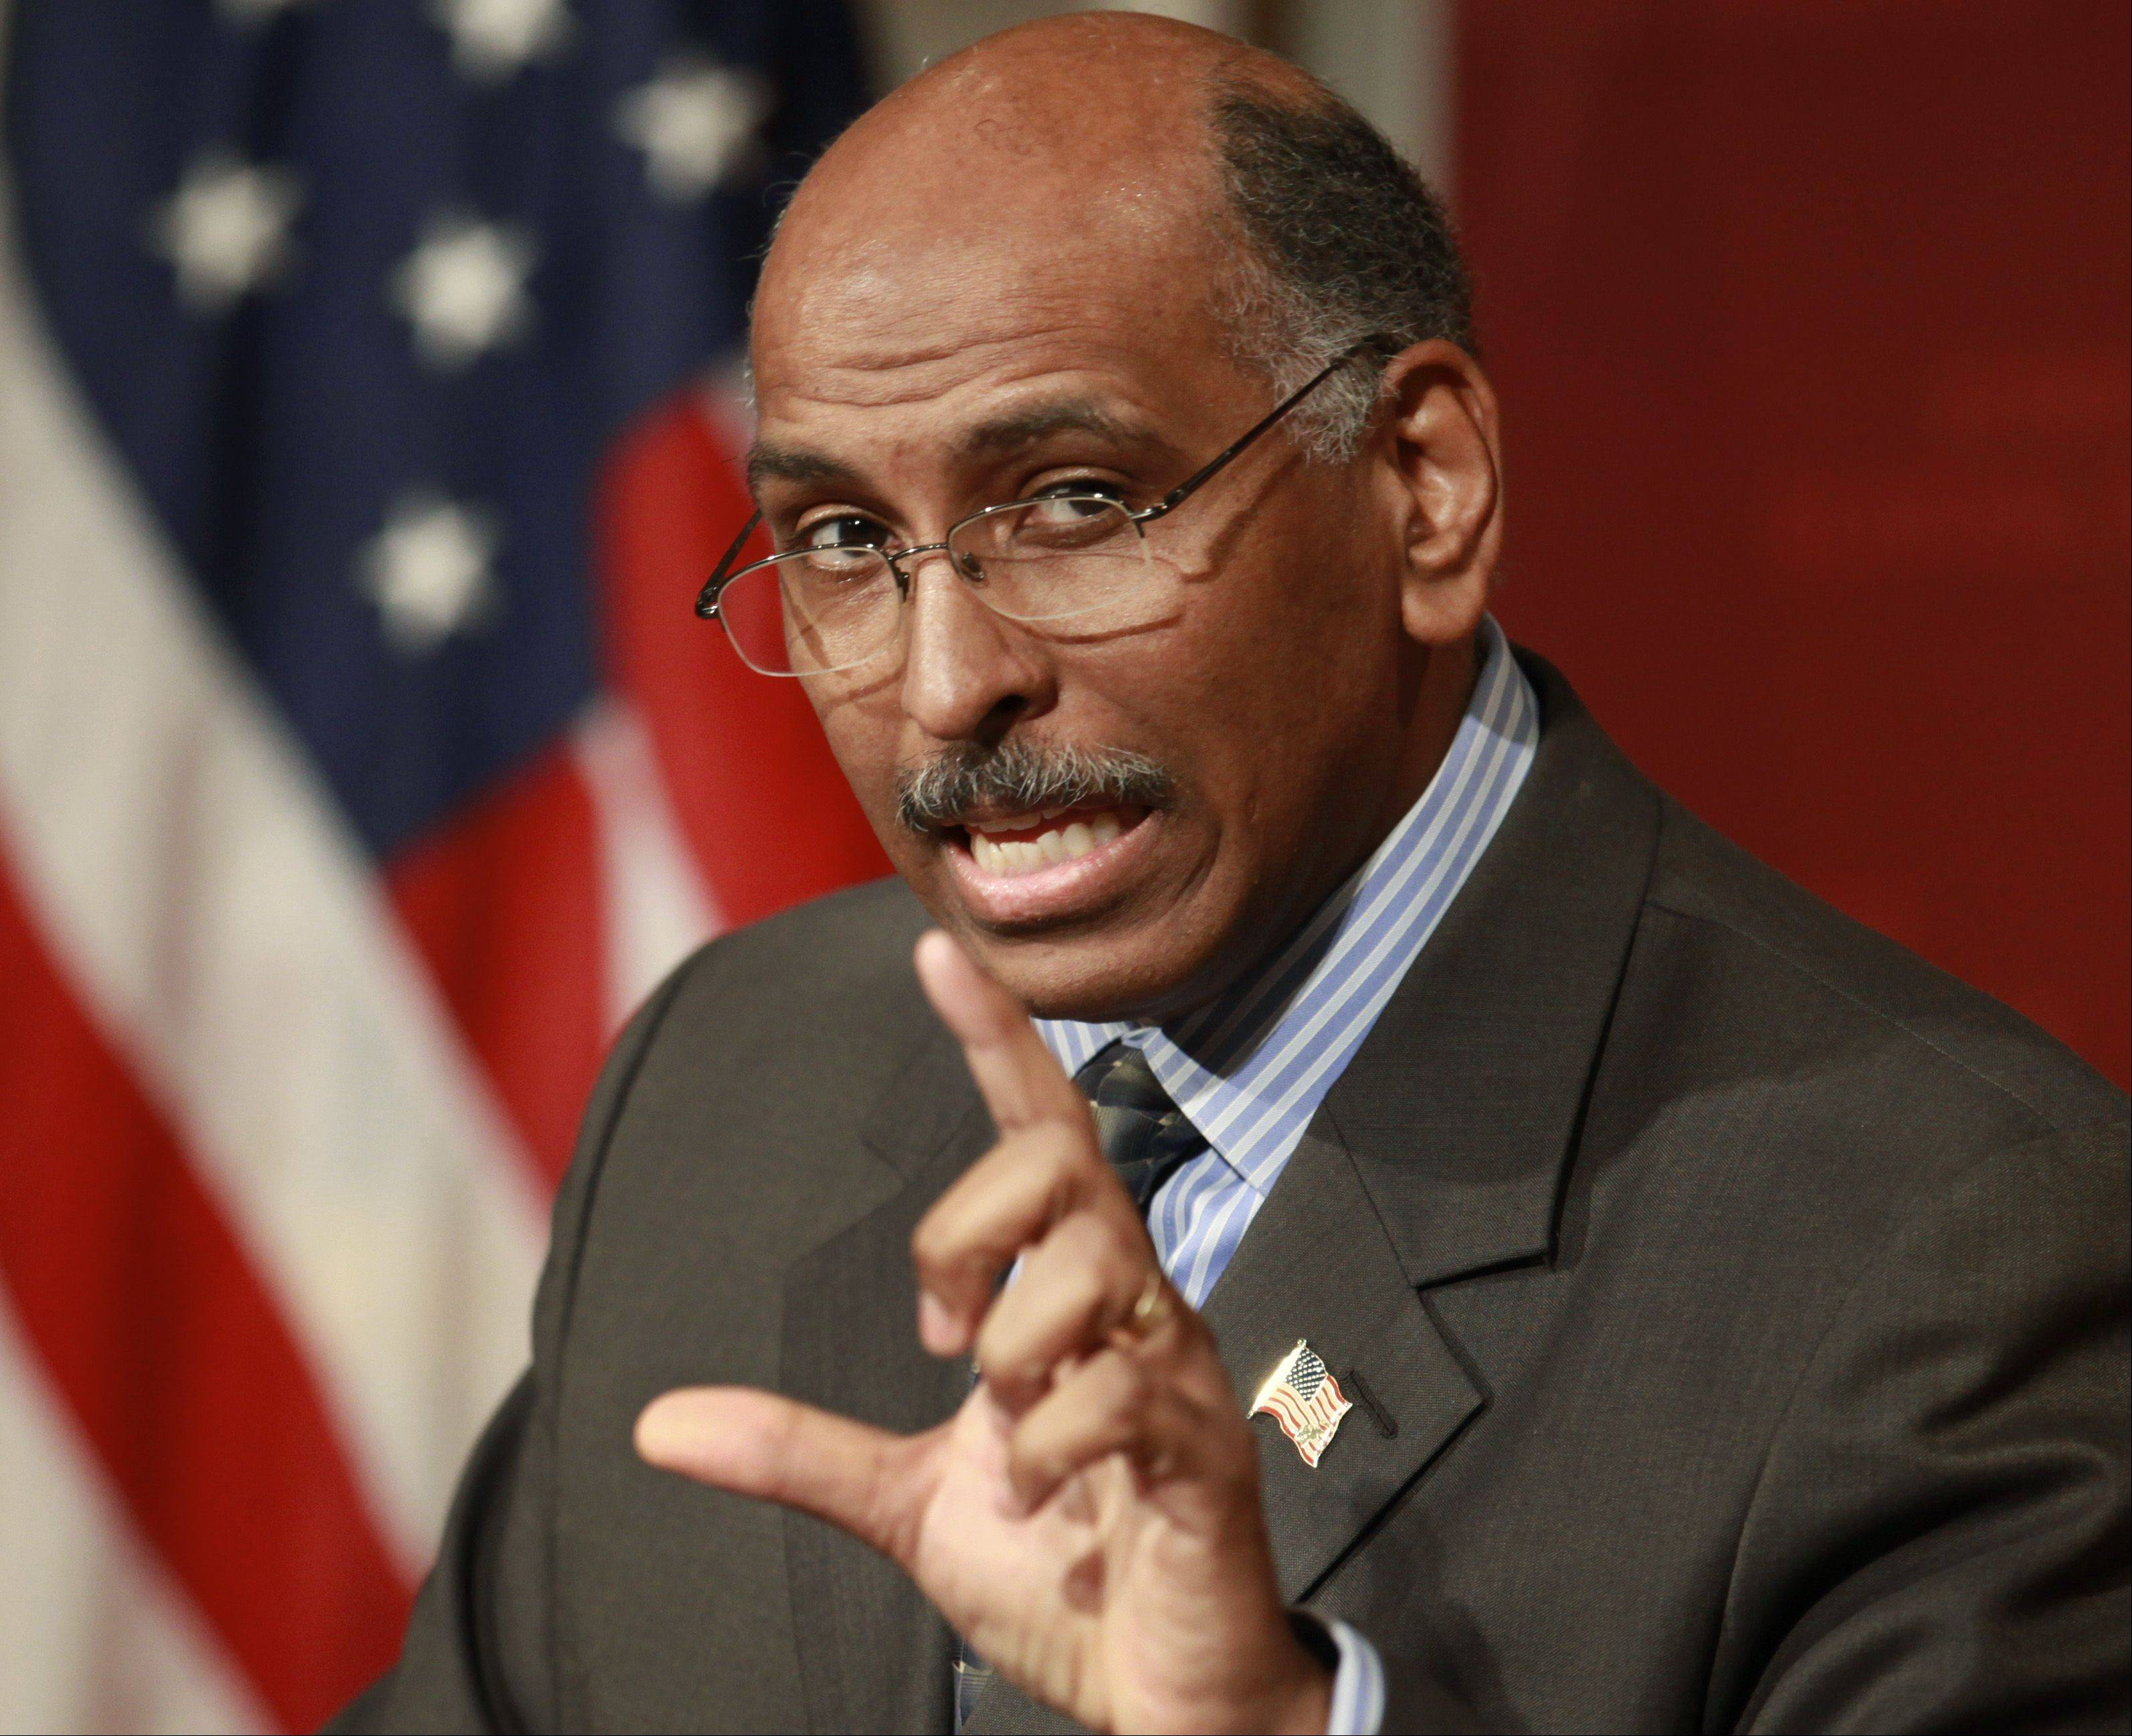 Michael Steele, the former chairman of the Republican Party, will speak Wednesday, Sept. 19, as part of Benedictine University's Presidential Election Series.